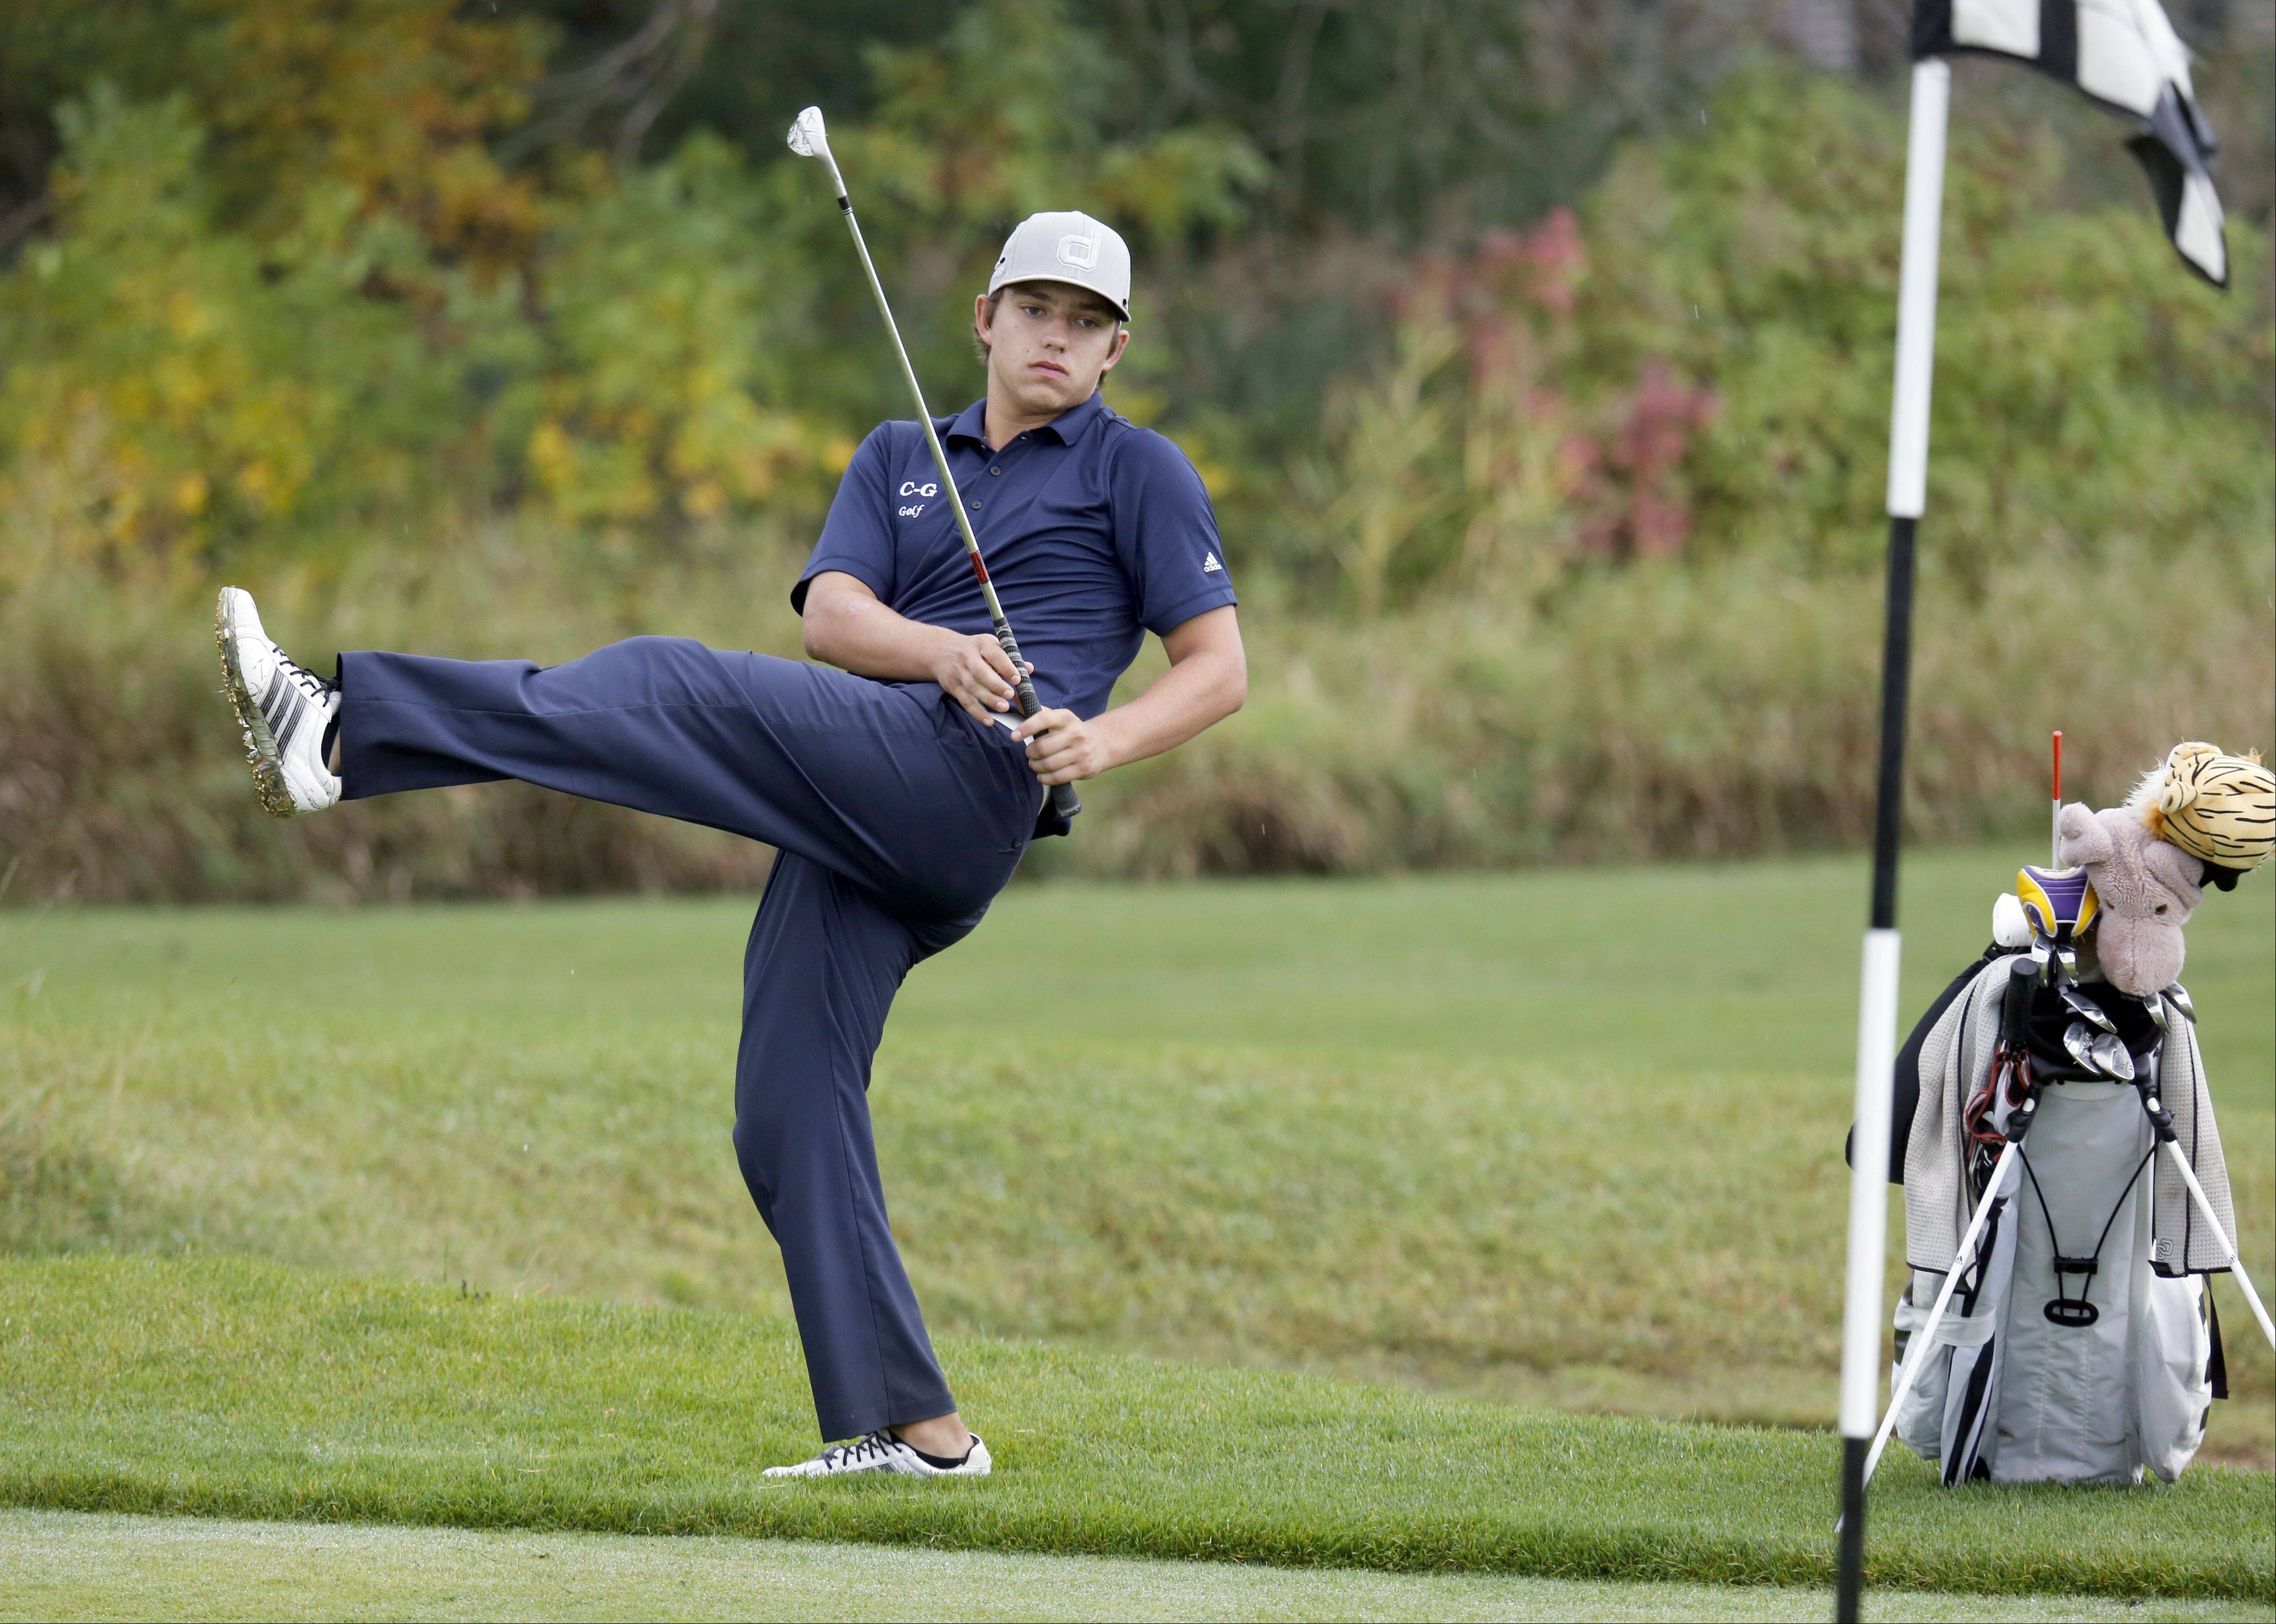 Cary Grove's Daniel DePrey reacts to a shot during the Fox Valley Conference boys golf tournament at the Golf Club of Illinois Thursday in Algonquin.